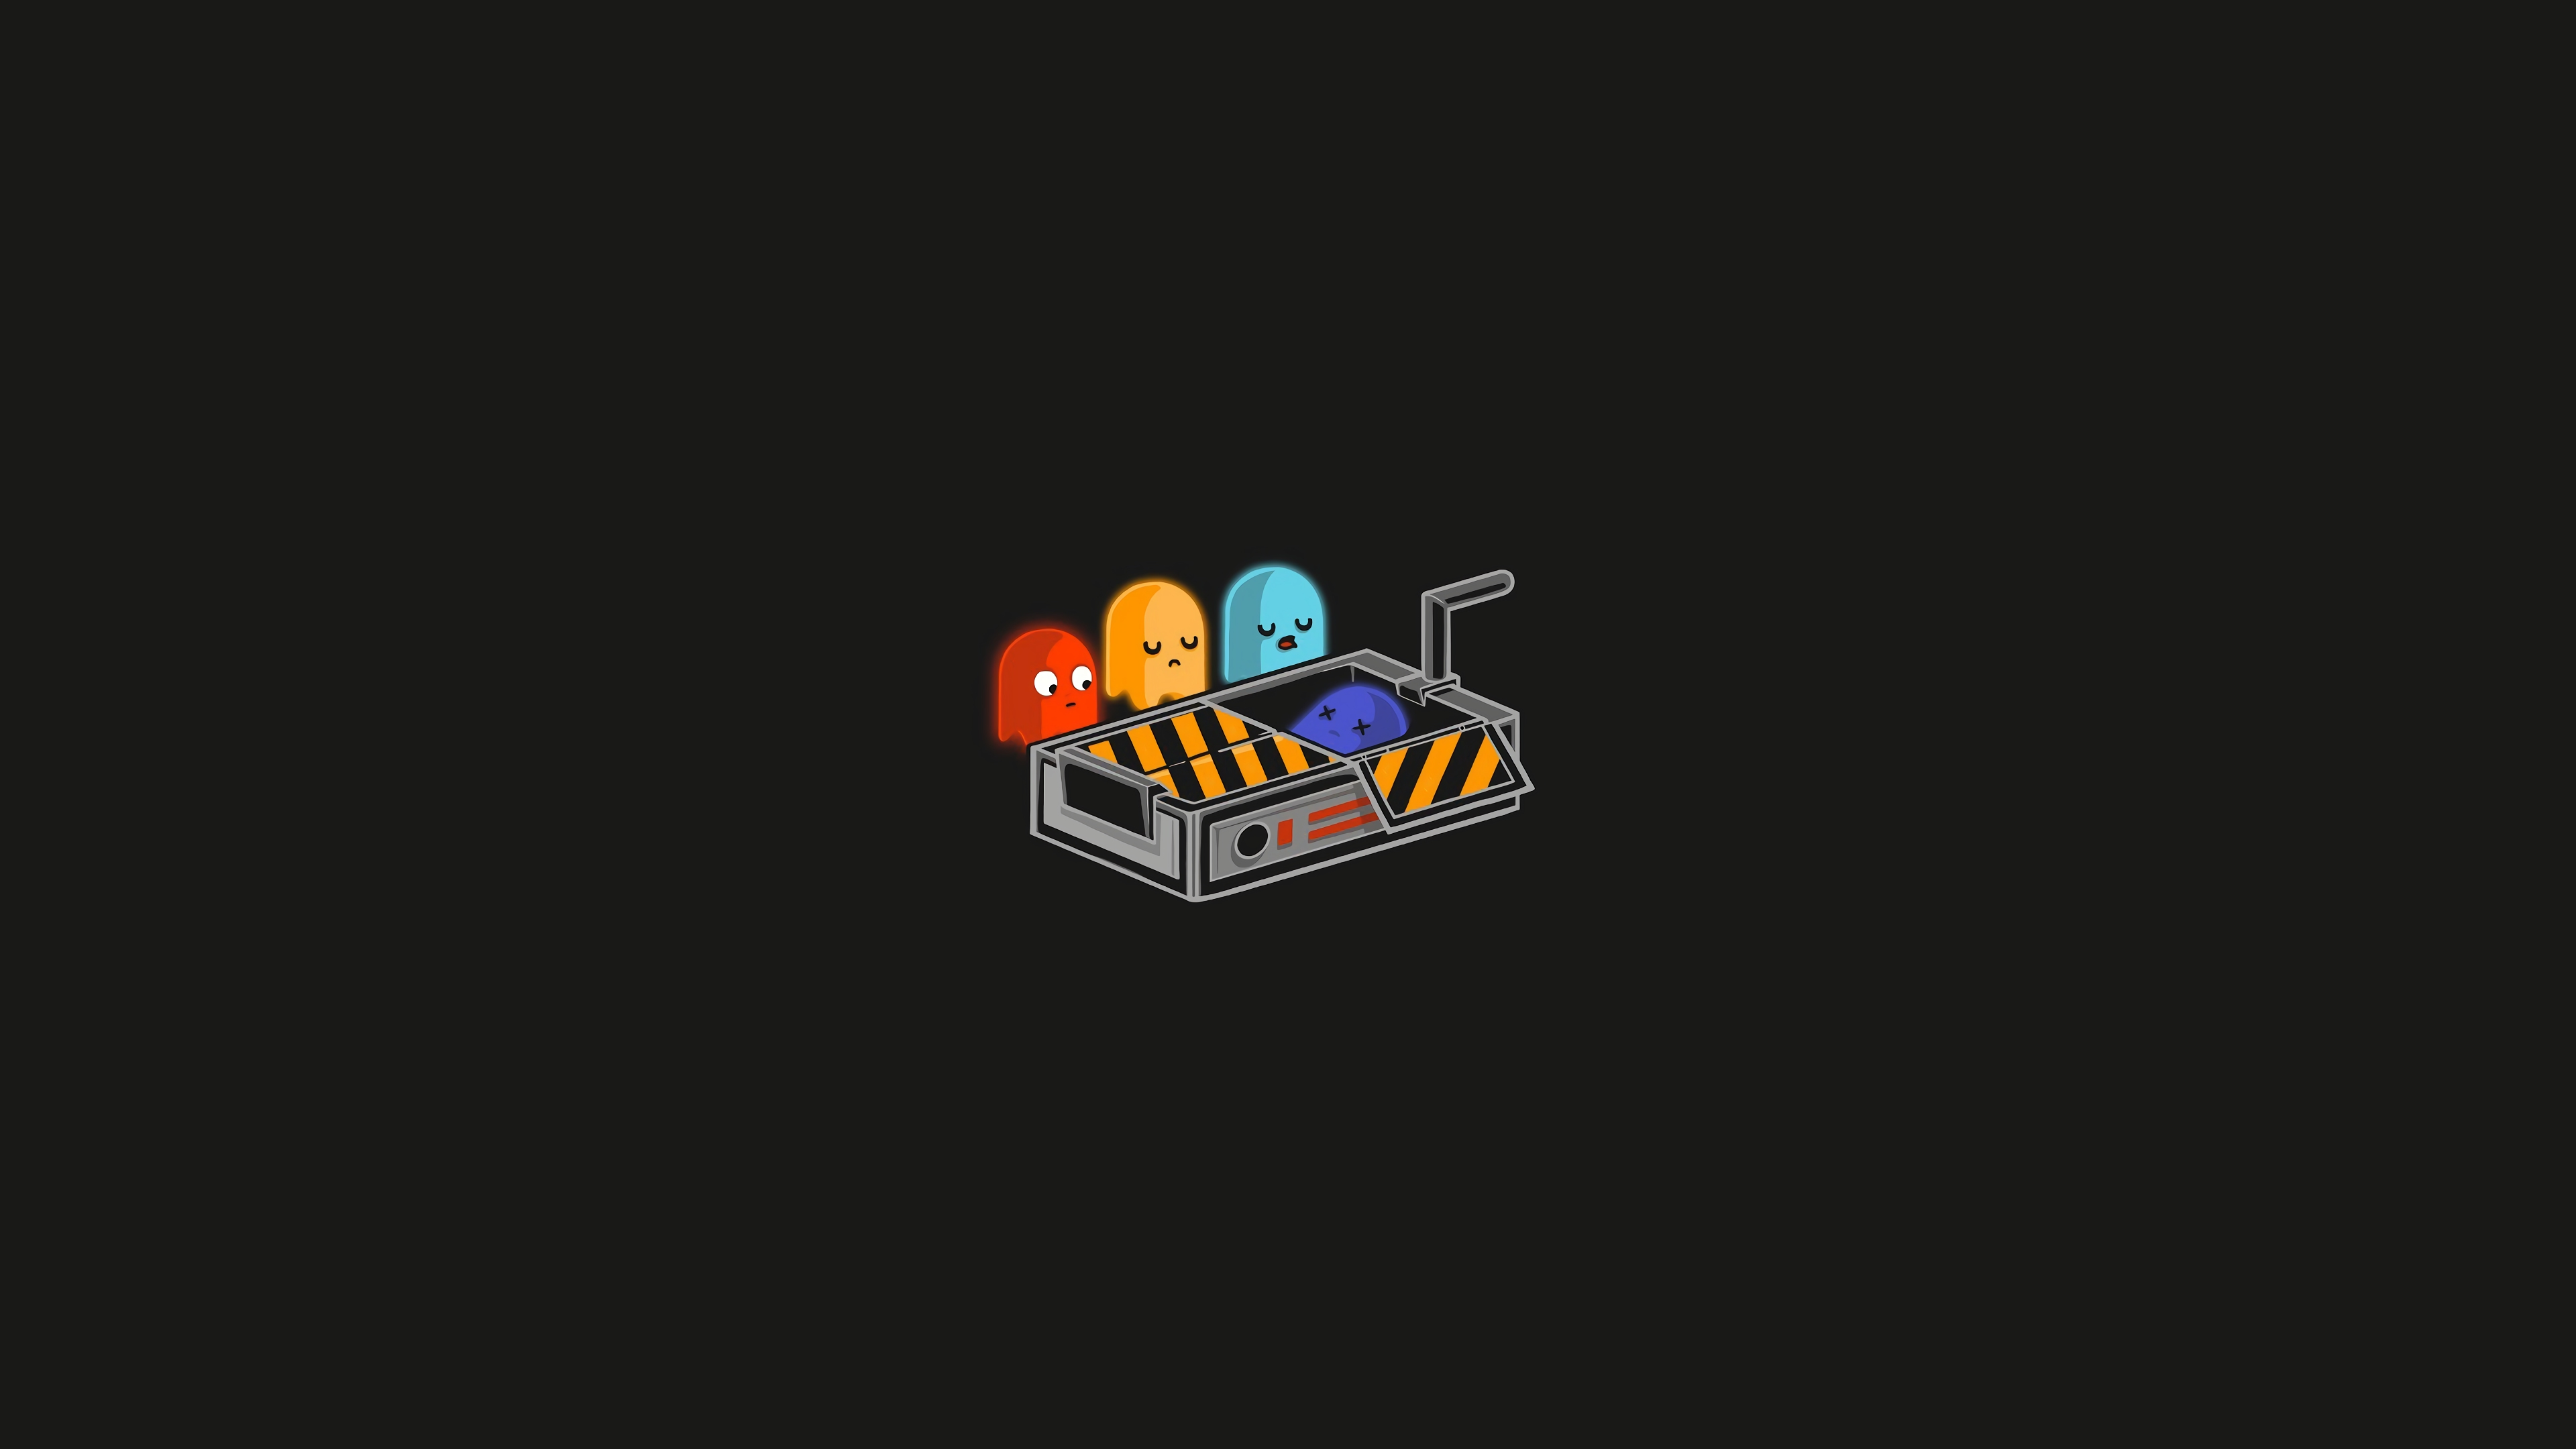 Pacman Minimal 4k Hd Artist 4k Wallpapers Images Backgrounds Photos And Pictures